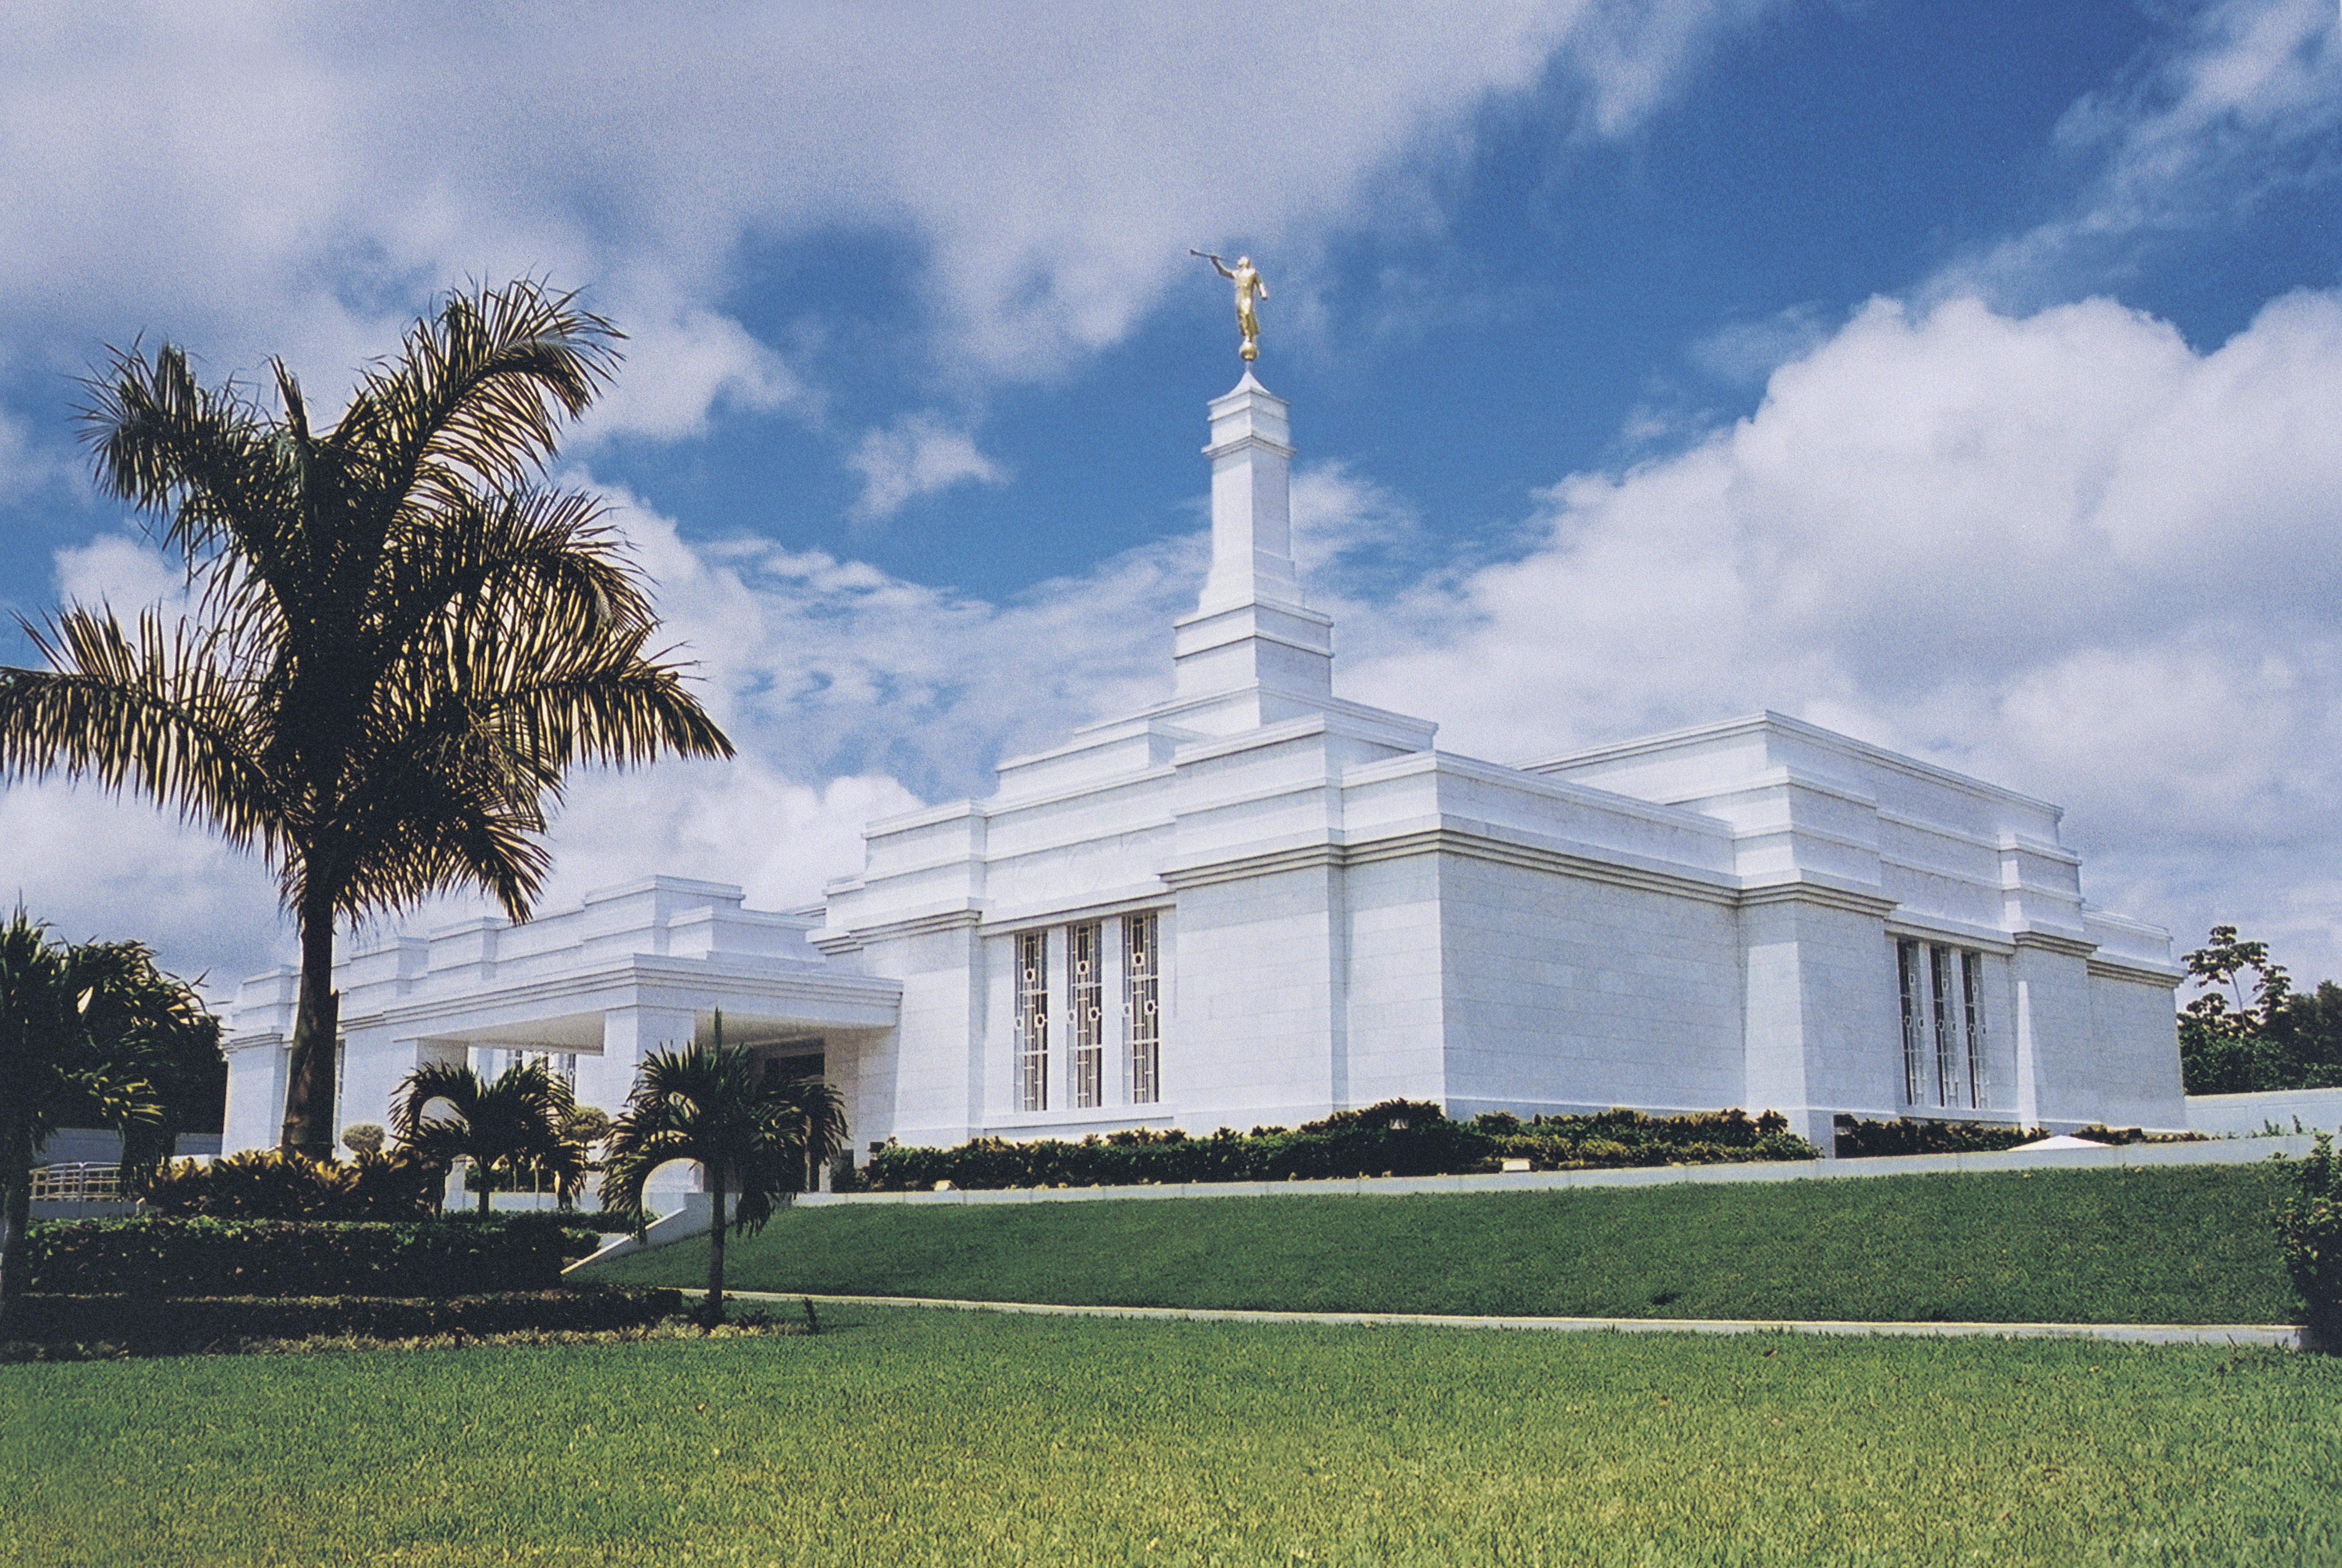 The Villahermosa Mexico Temple, with a large palm tree growing on the grounds.